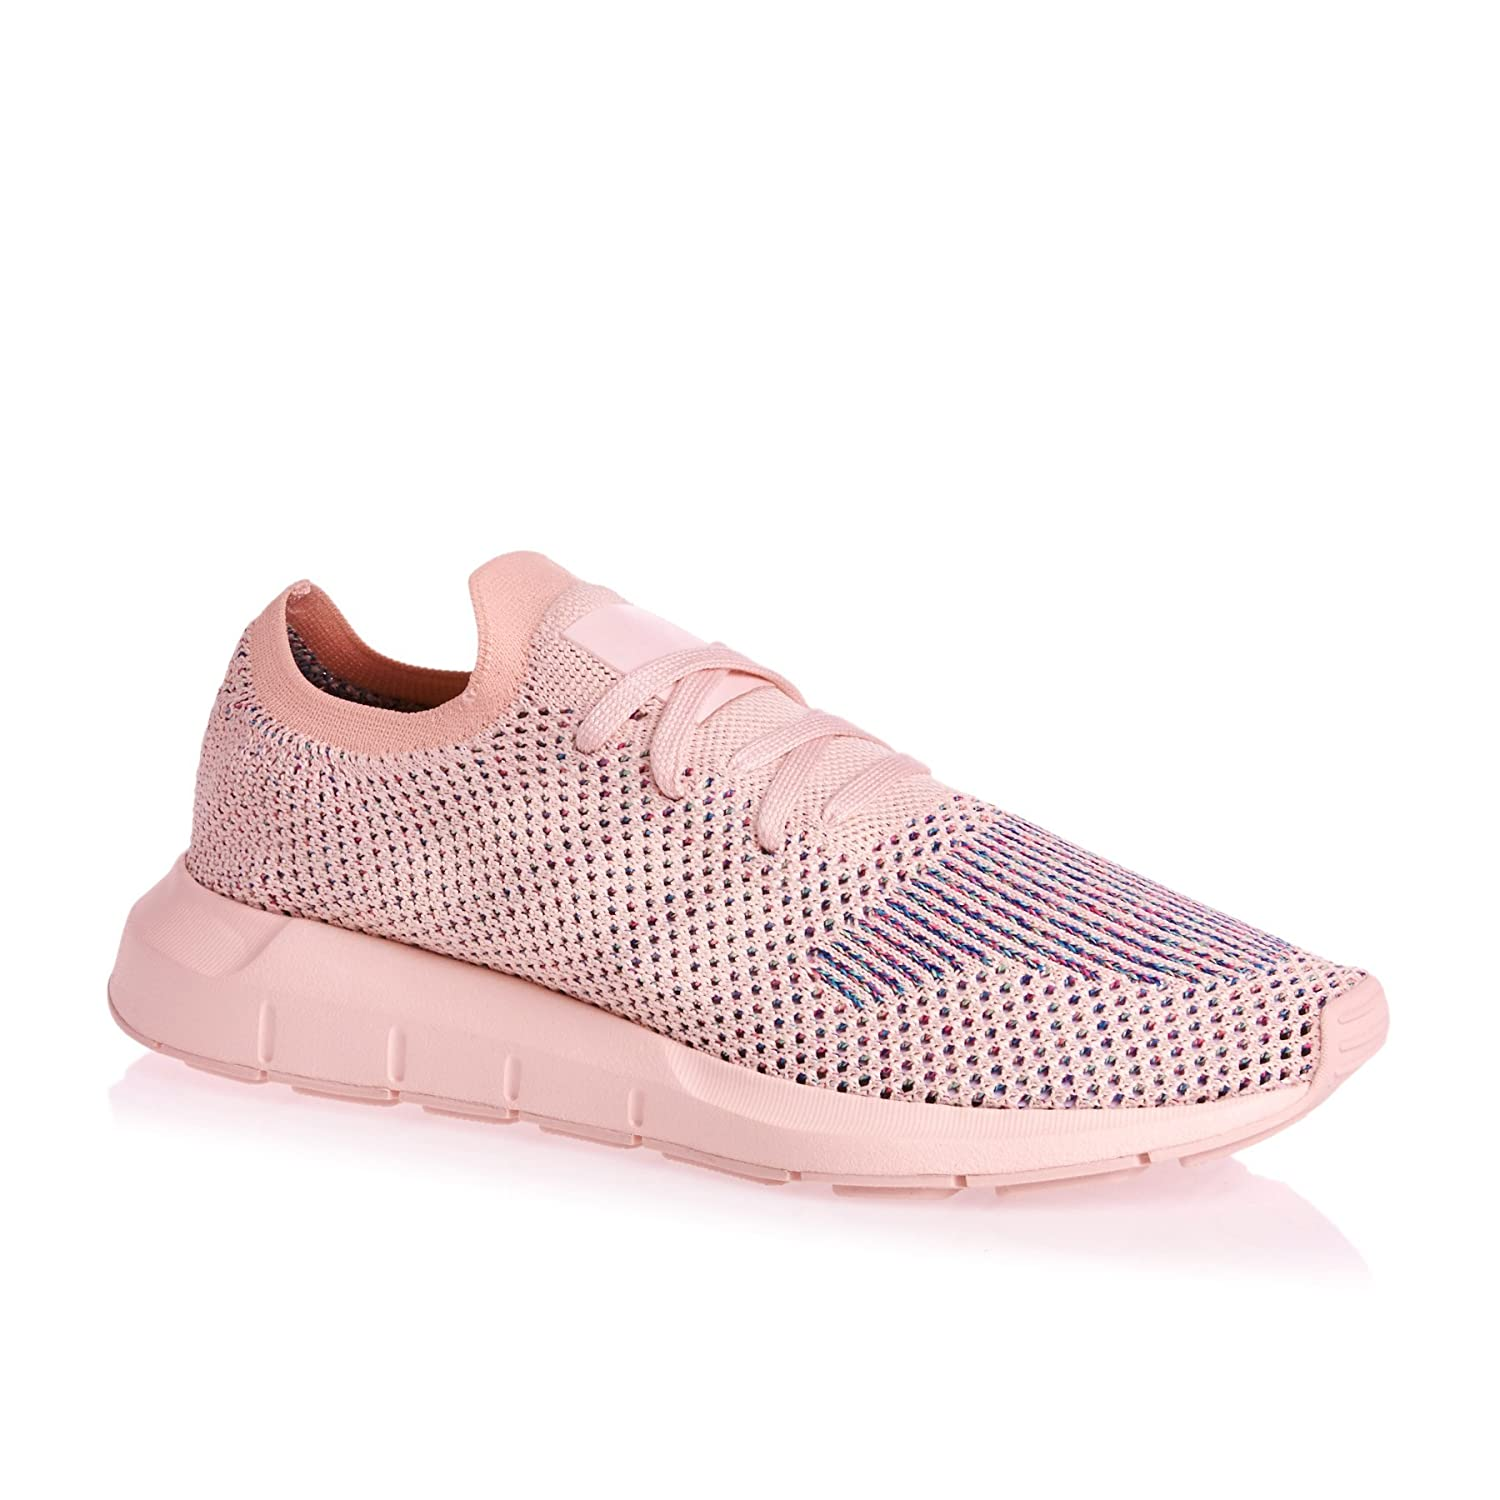 TALLA 36 2/3 EU. adidas Swift Run Primeknit - Tobillo bajo Unisex Adulto